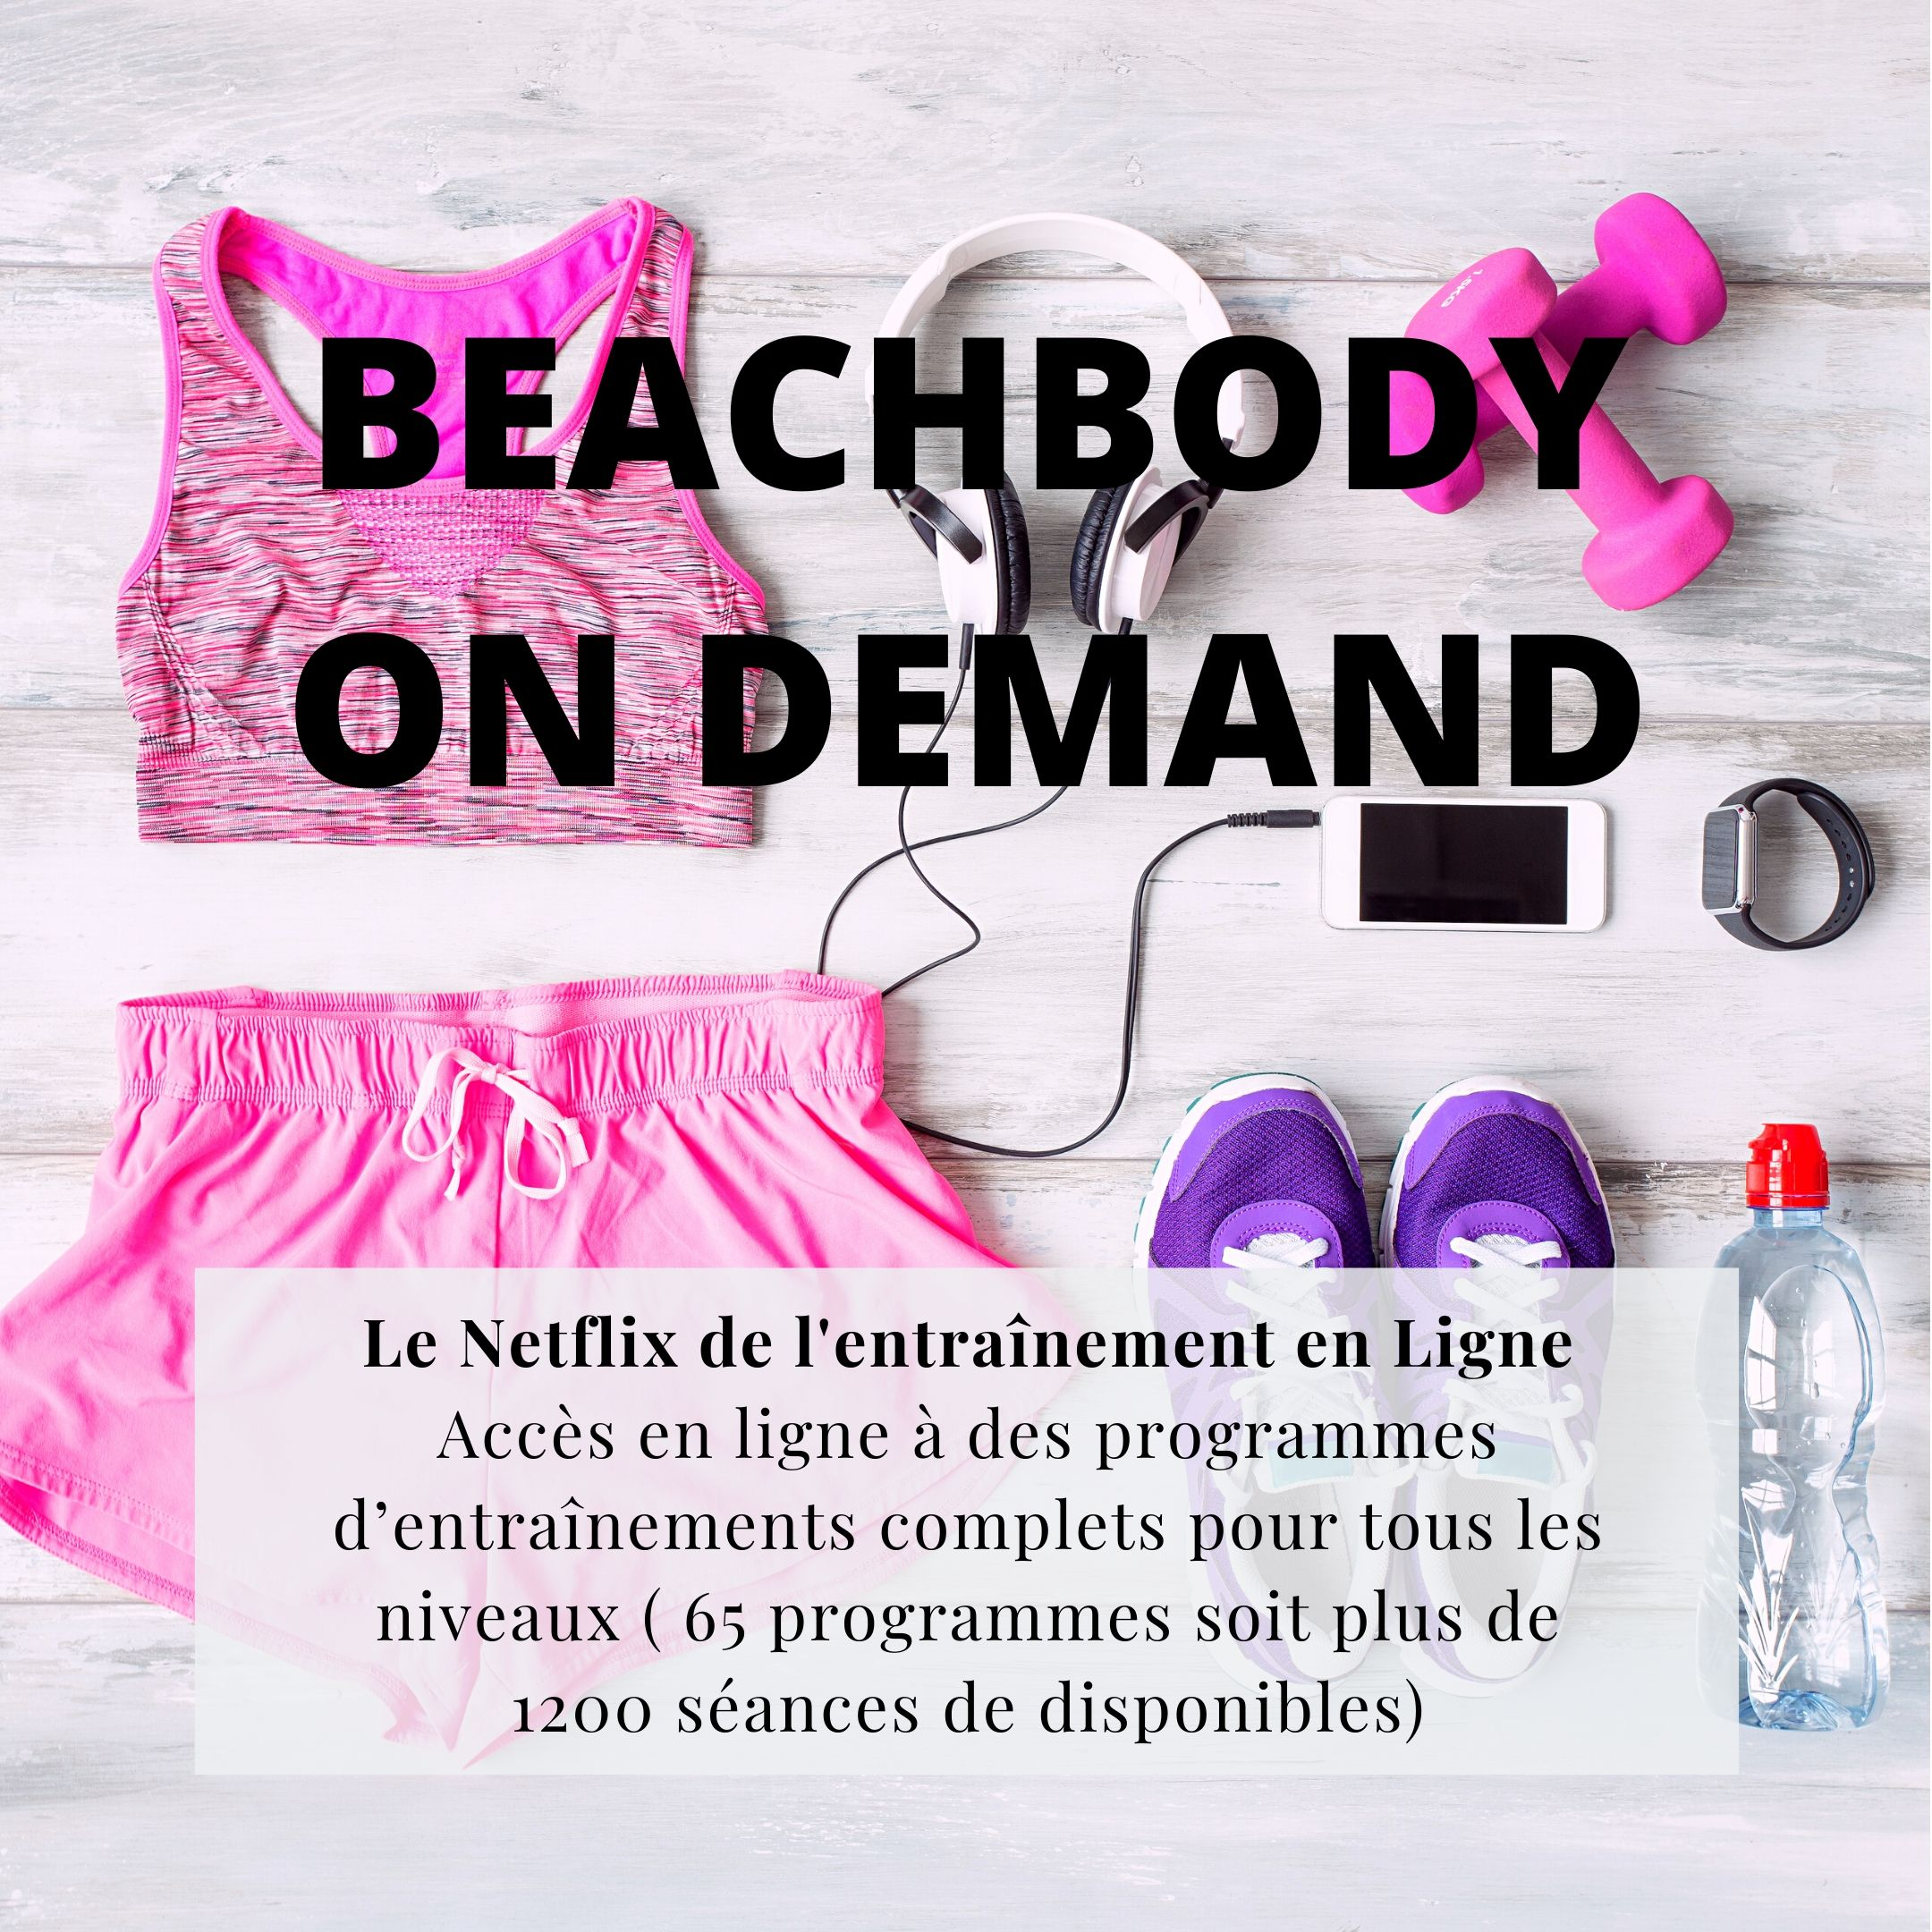 Beachbody France